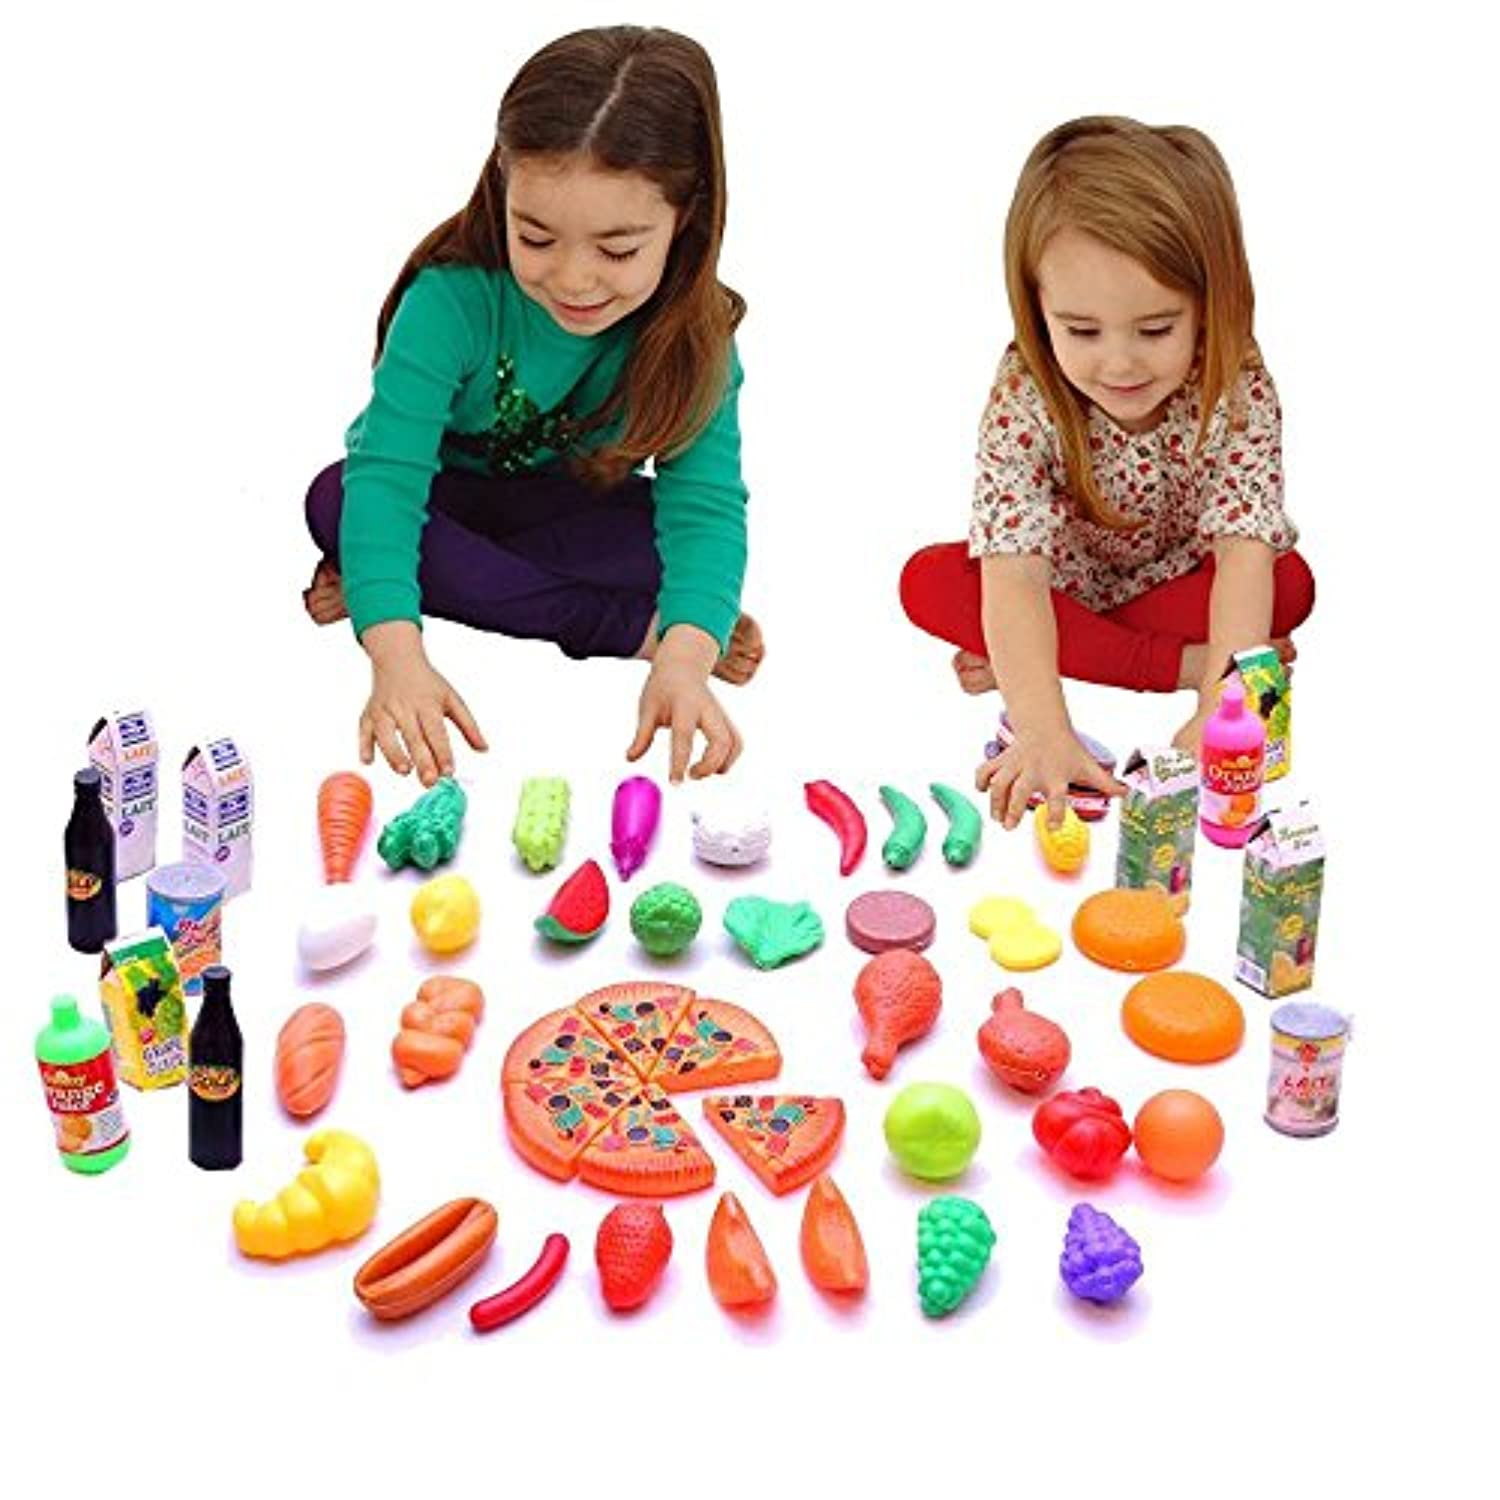 Toy Cubby Pretend Play Kids Toddlers Food Figure Play Set - 65 pieces [並行輸入品]